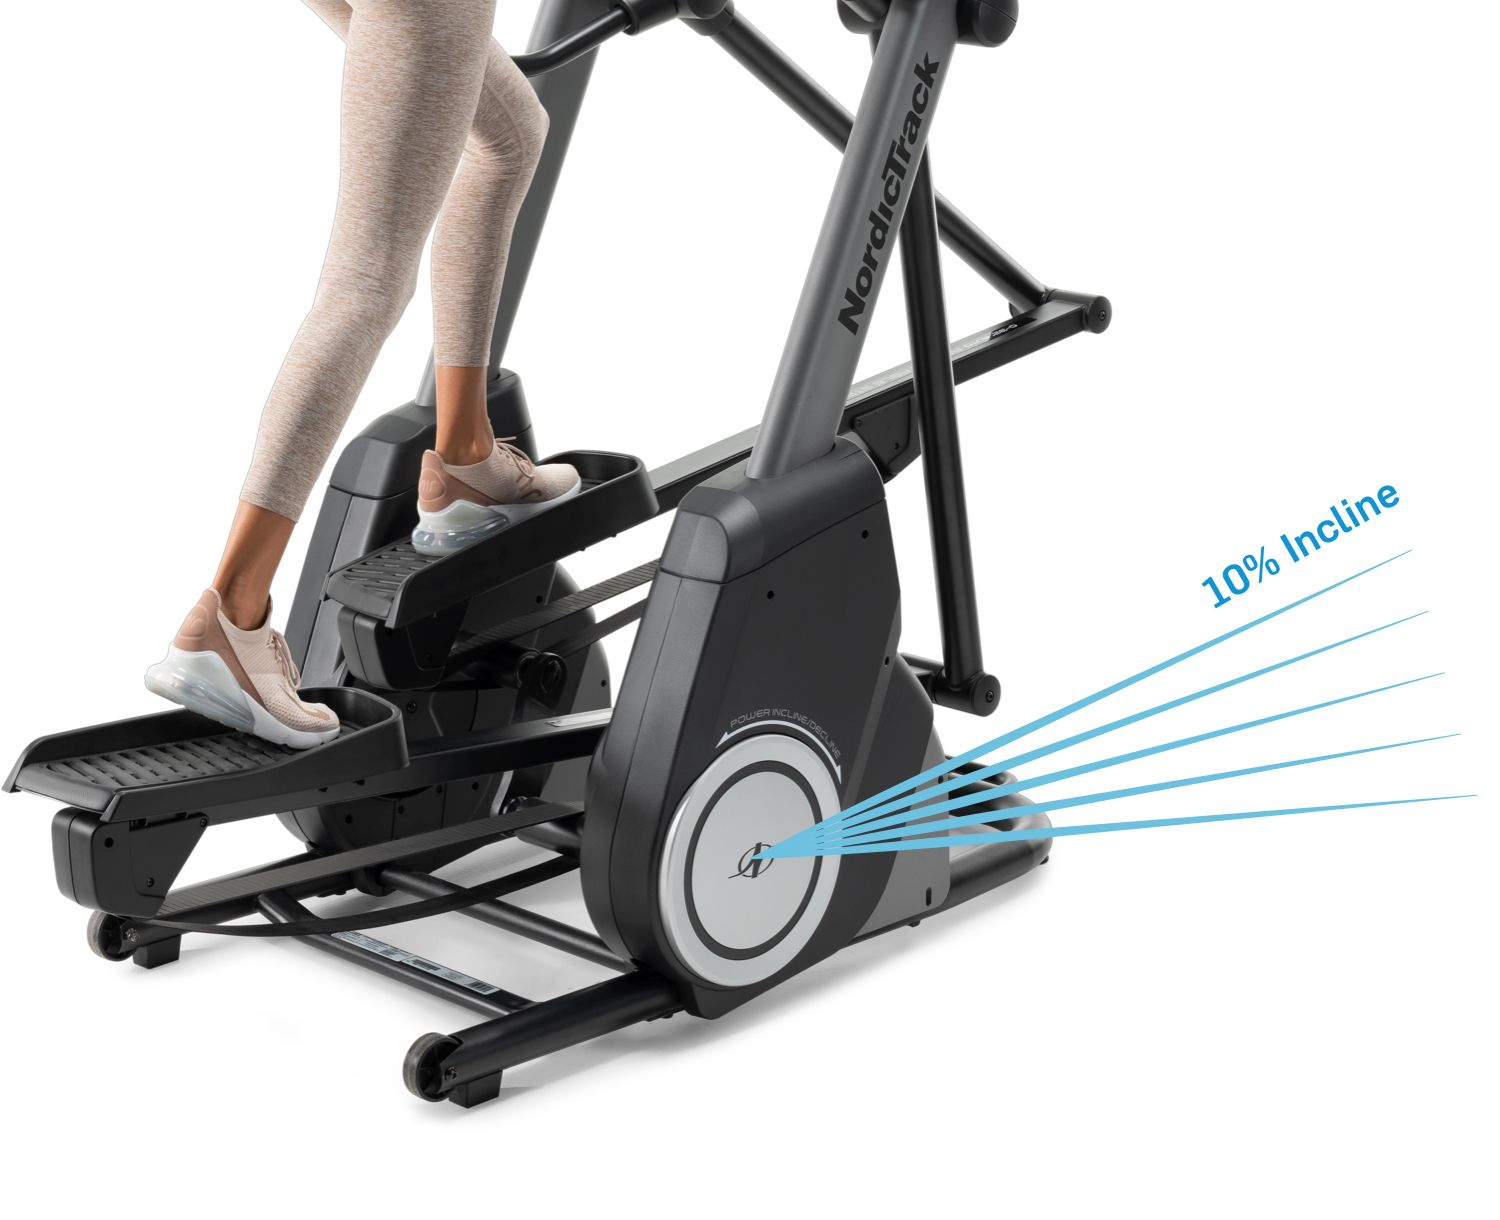 NordicTrack FS10i - Incline Capability to 10%